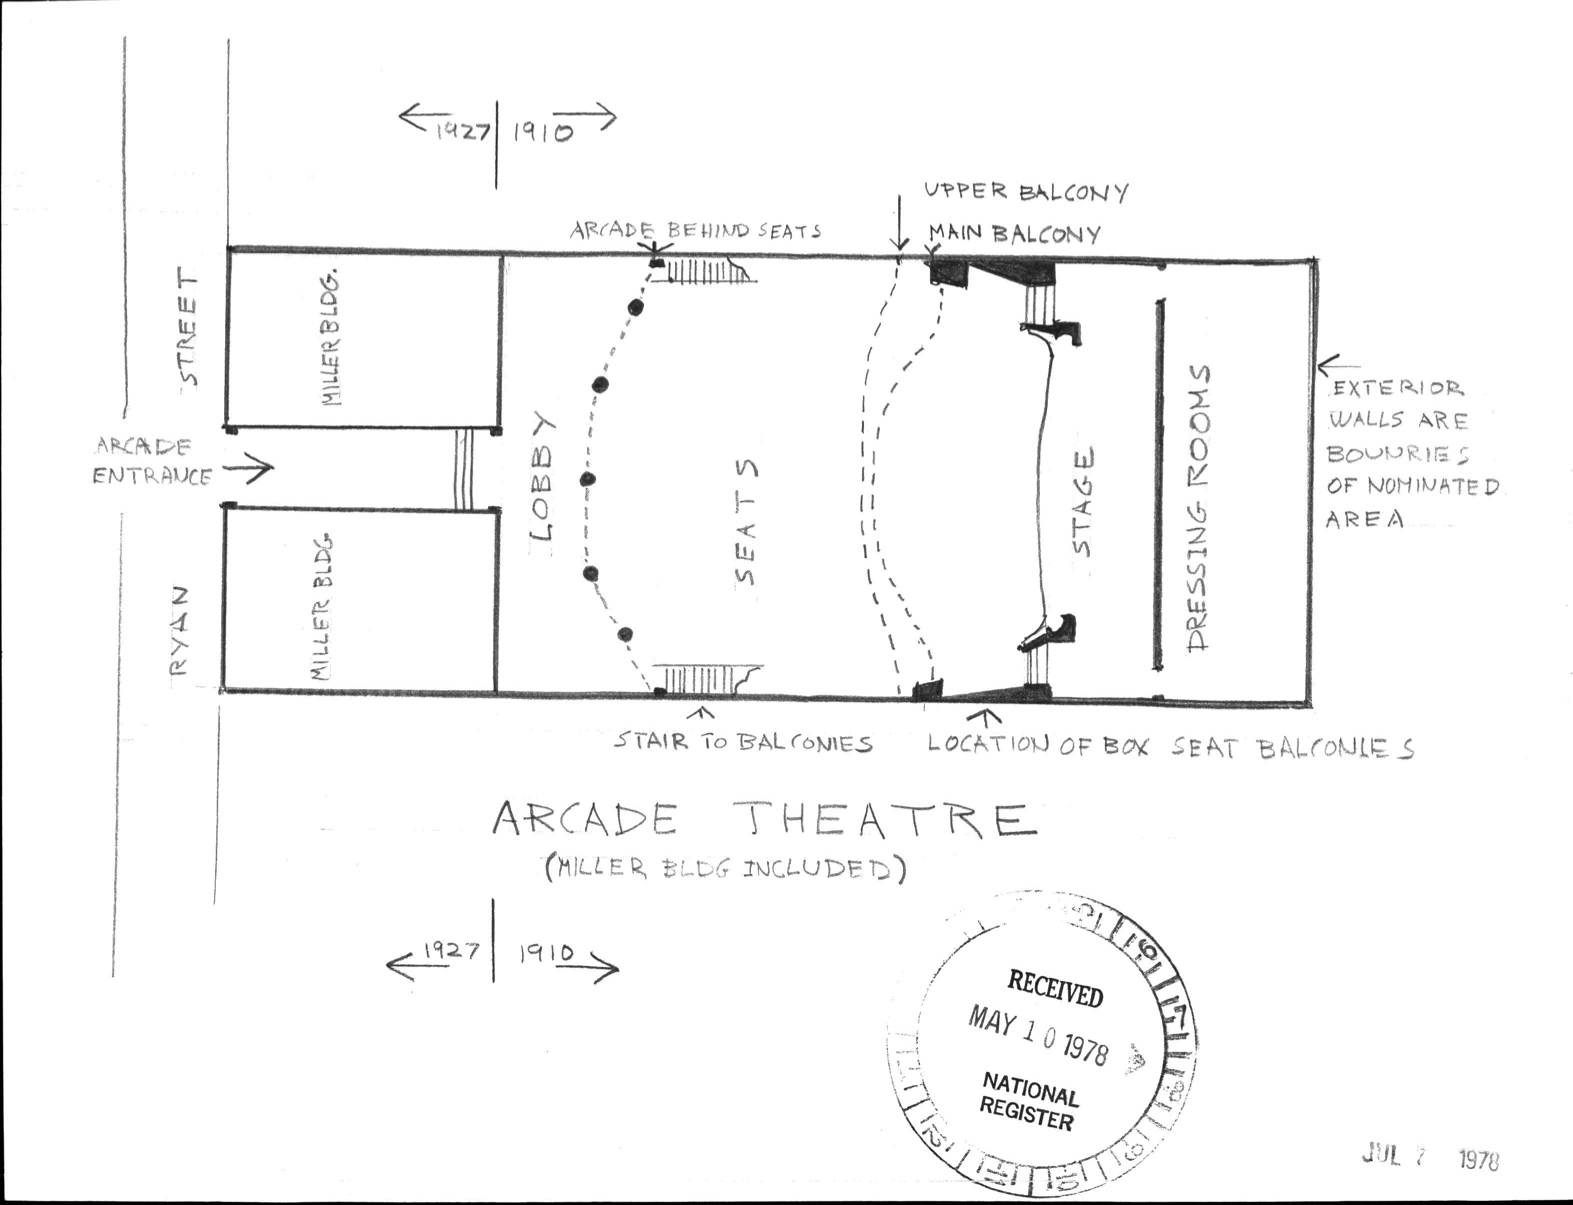 image showing an architectural plan for the Arcade Theatre.